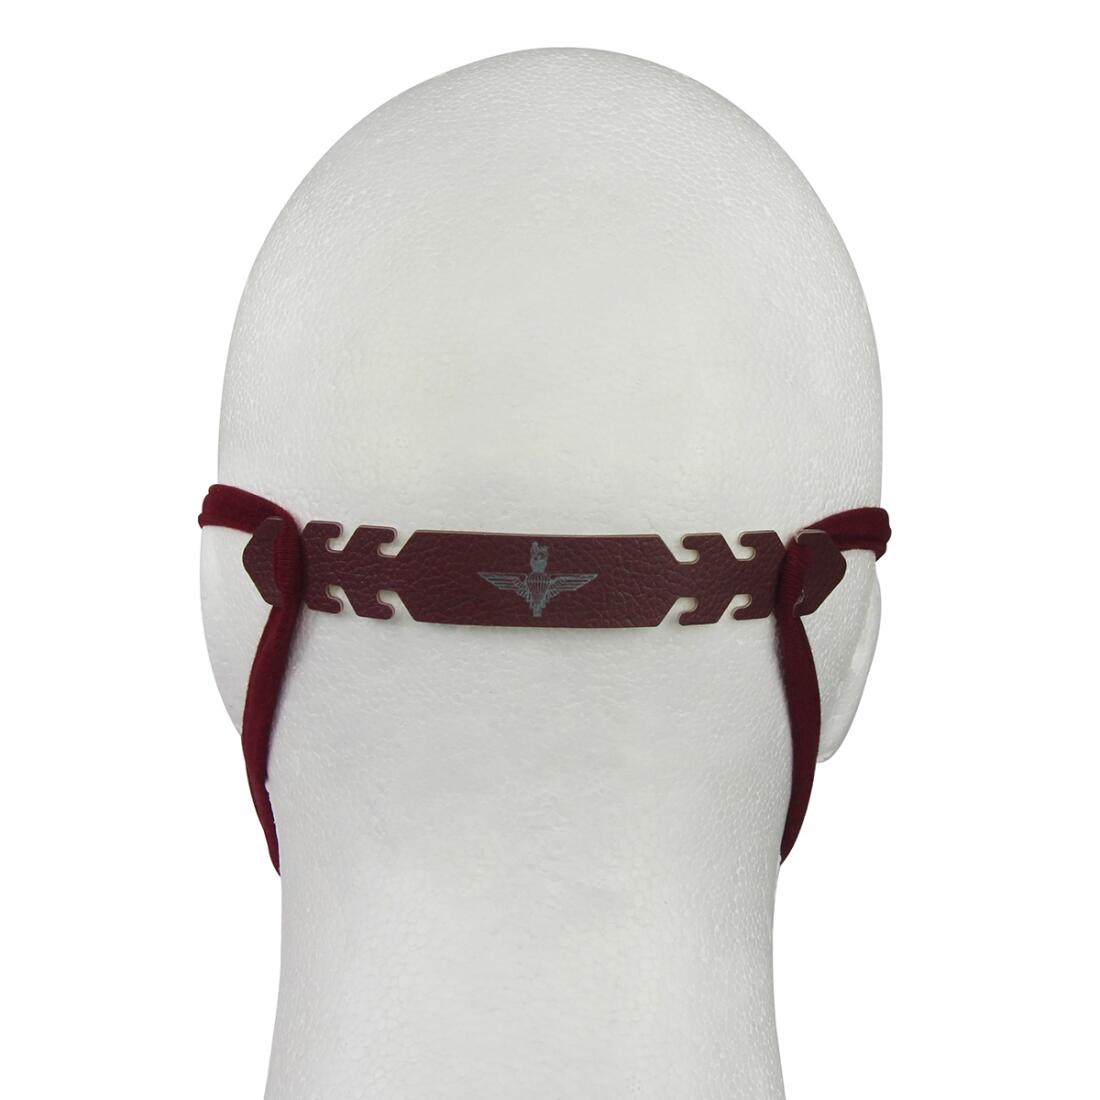 Maroon Ear Saver Extender for Face Coverings/Masks - Para or Pegasus